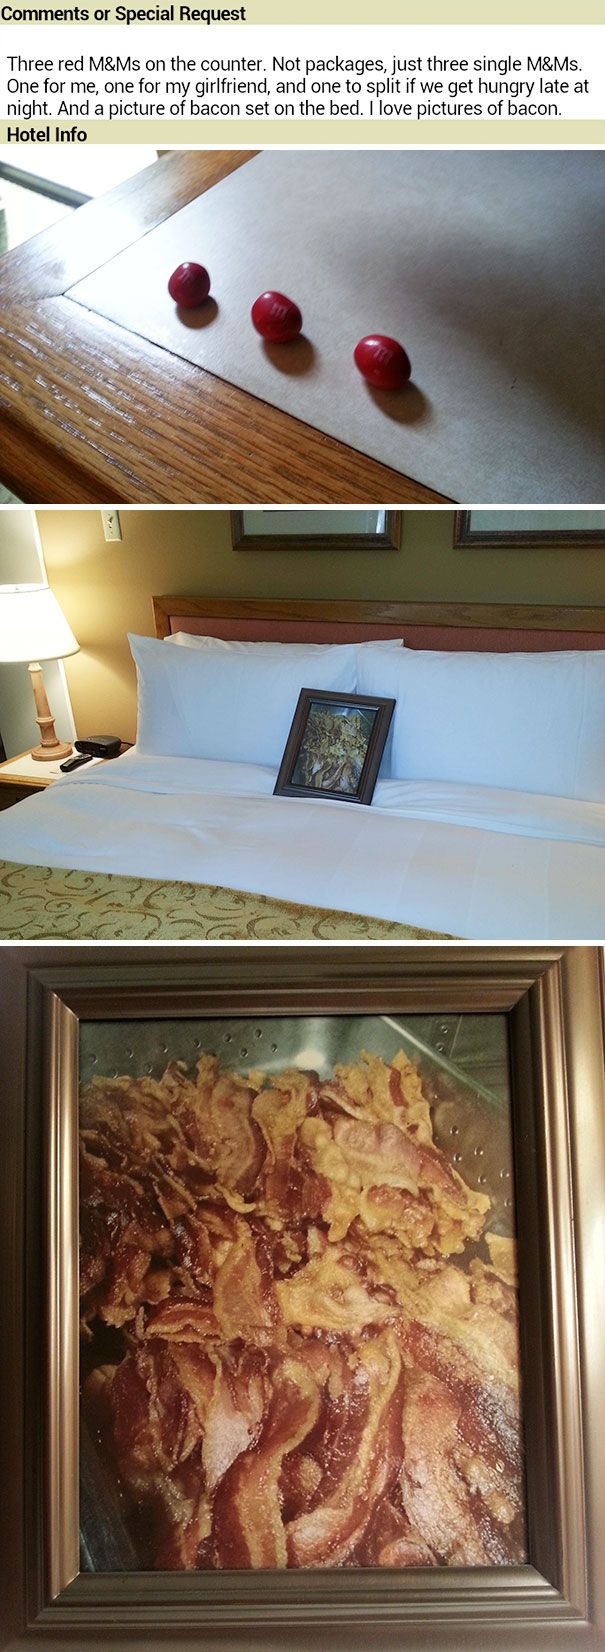 People Who Trolled Hotel Staff With Ridiculous Room Requests (18 pics)